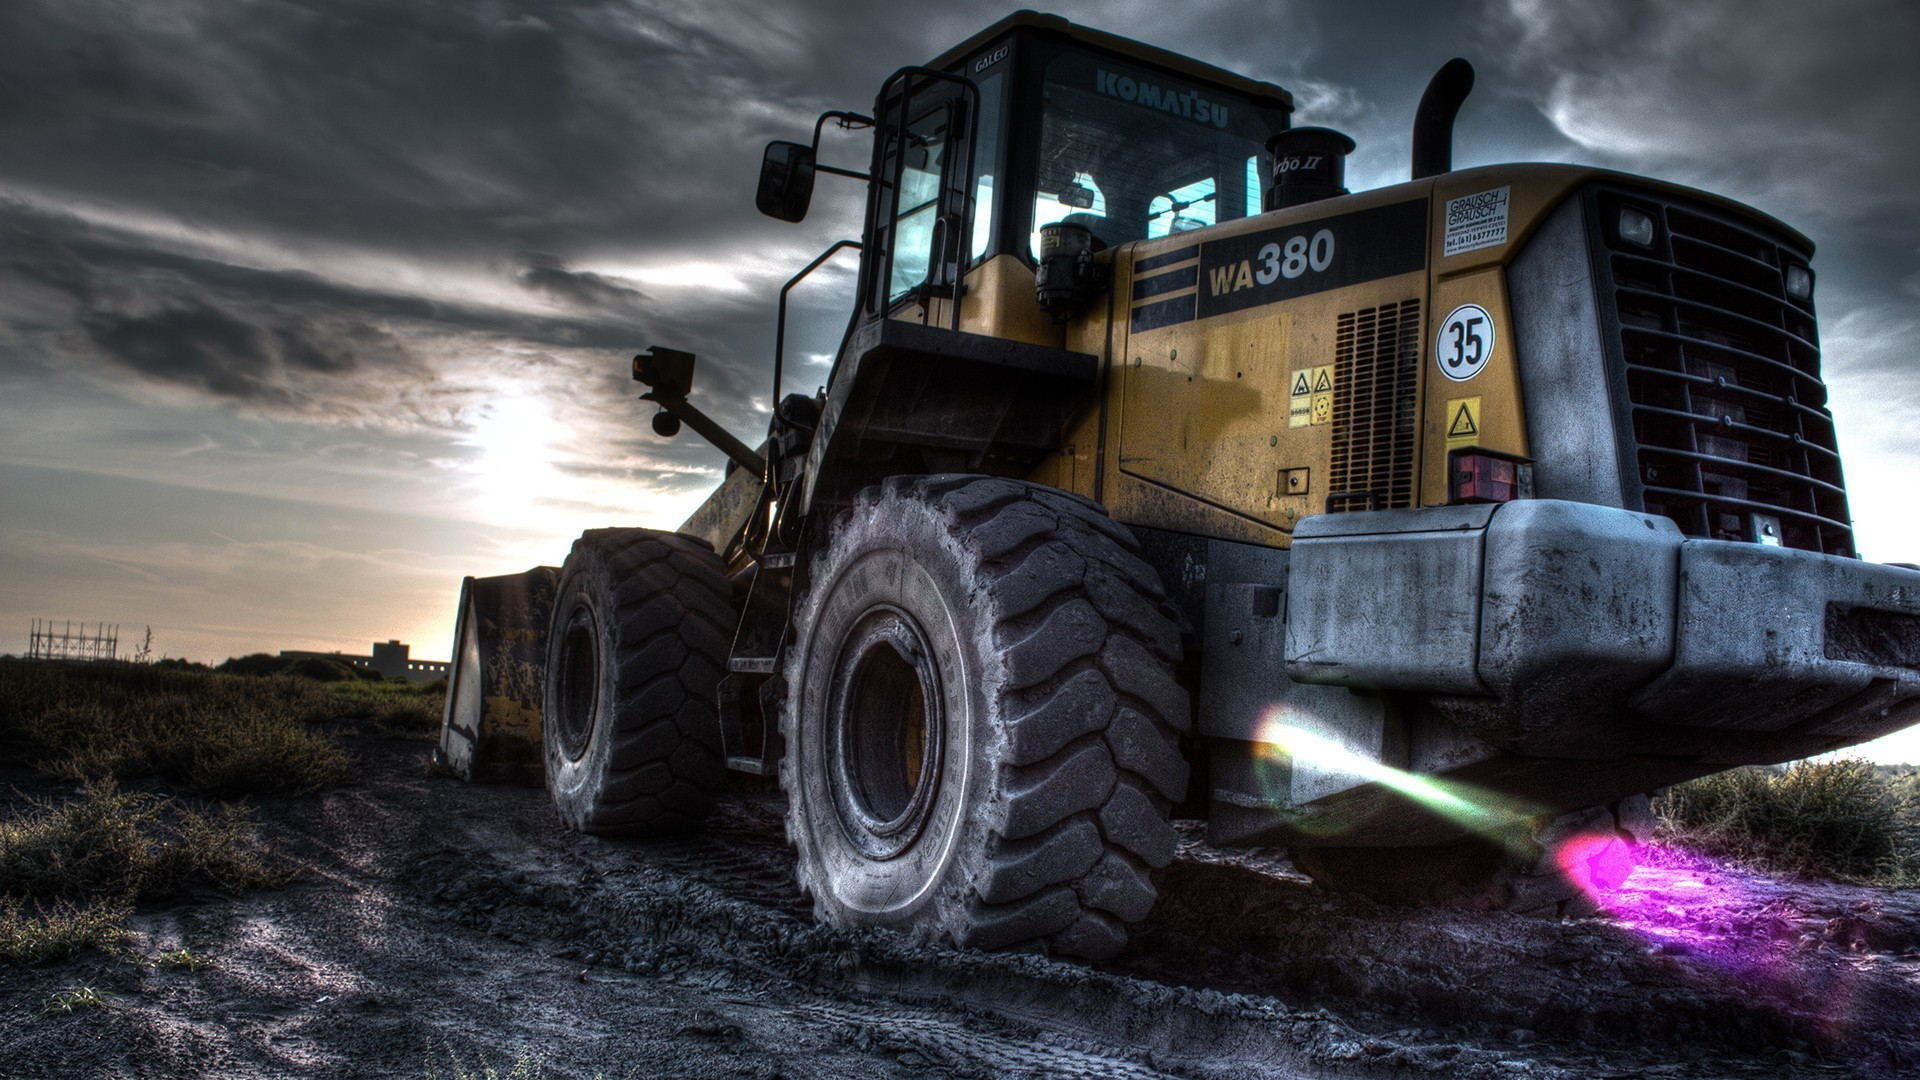 1920x1080 front end loader, Construction vehicles